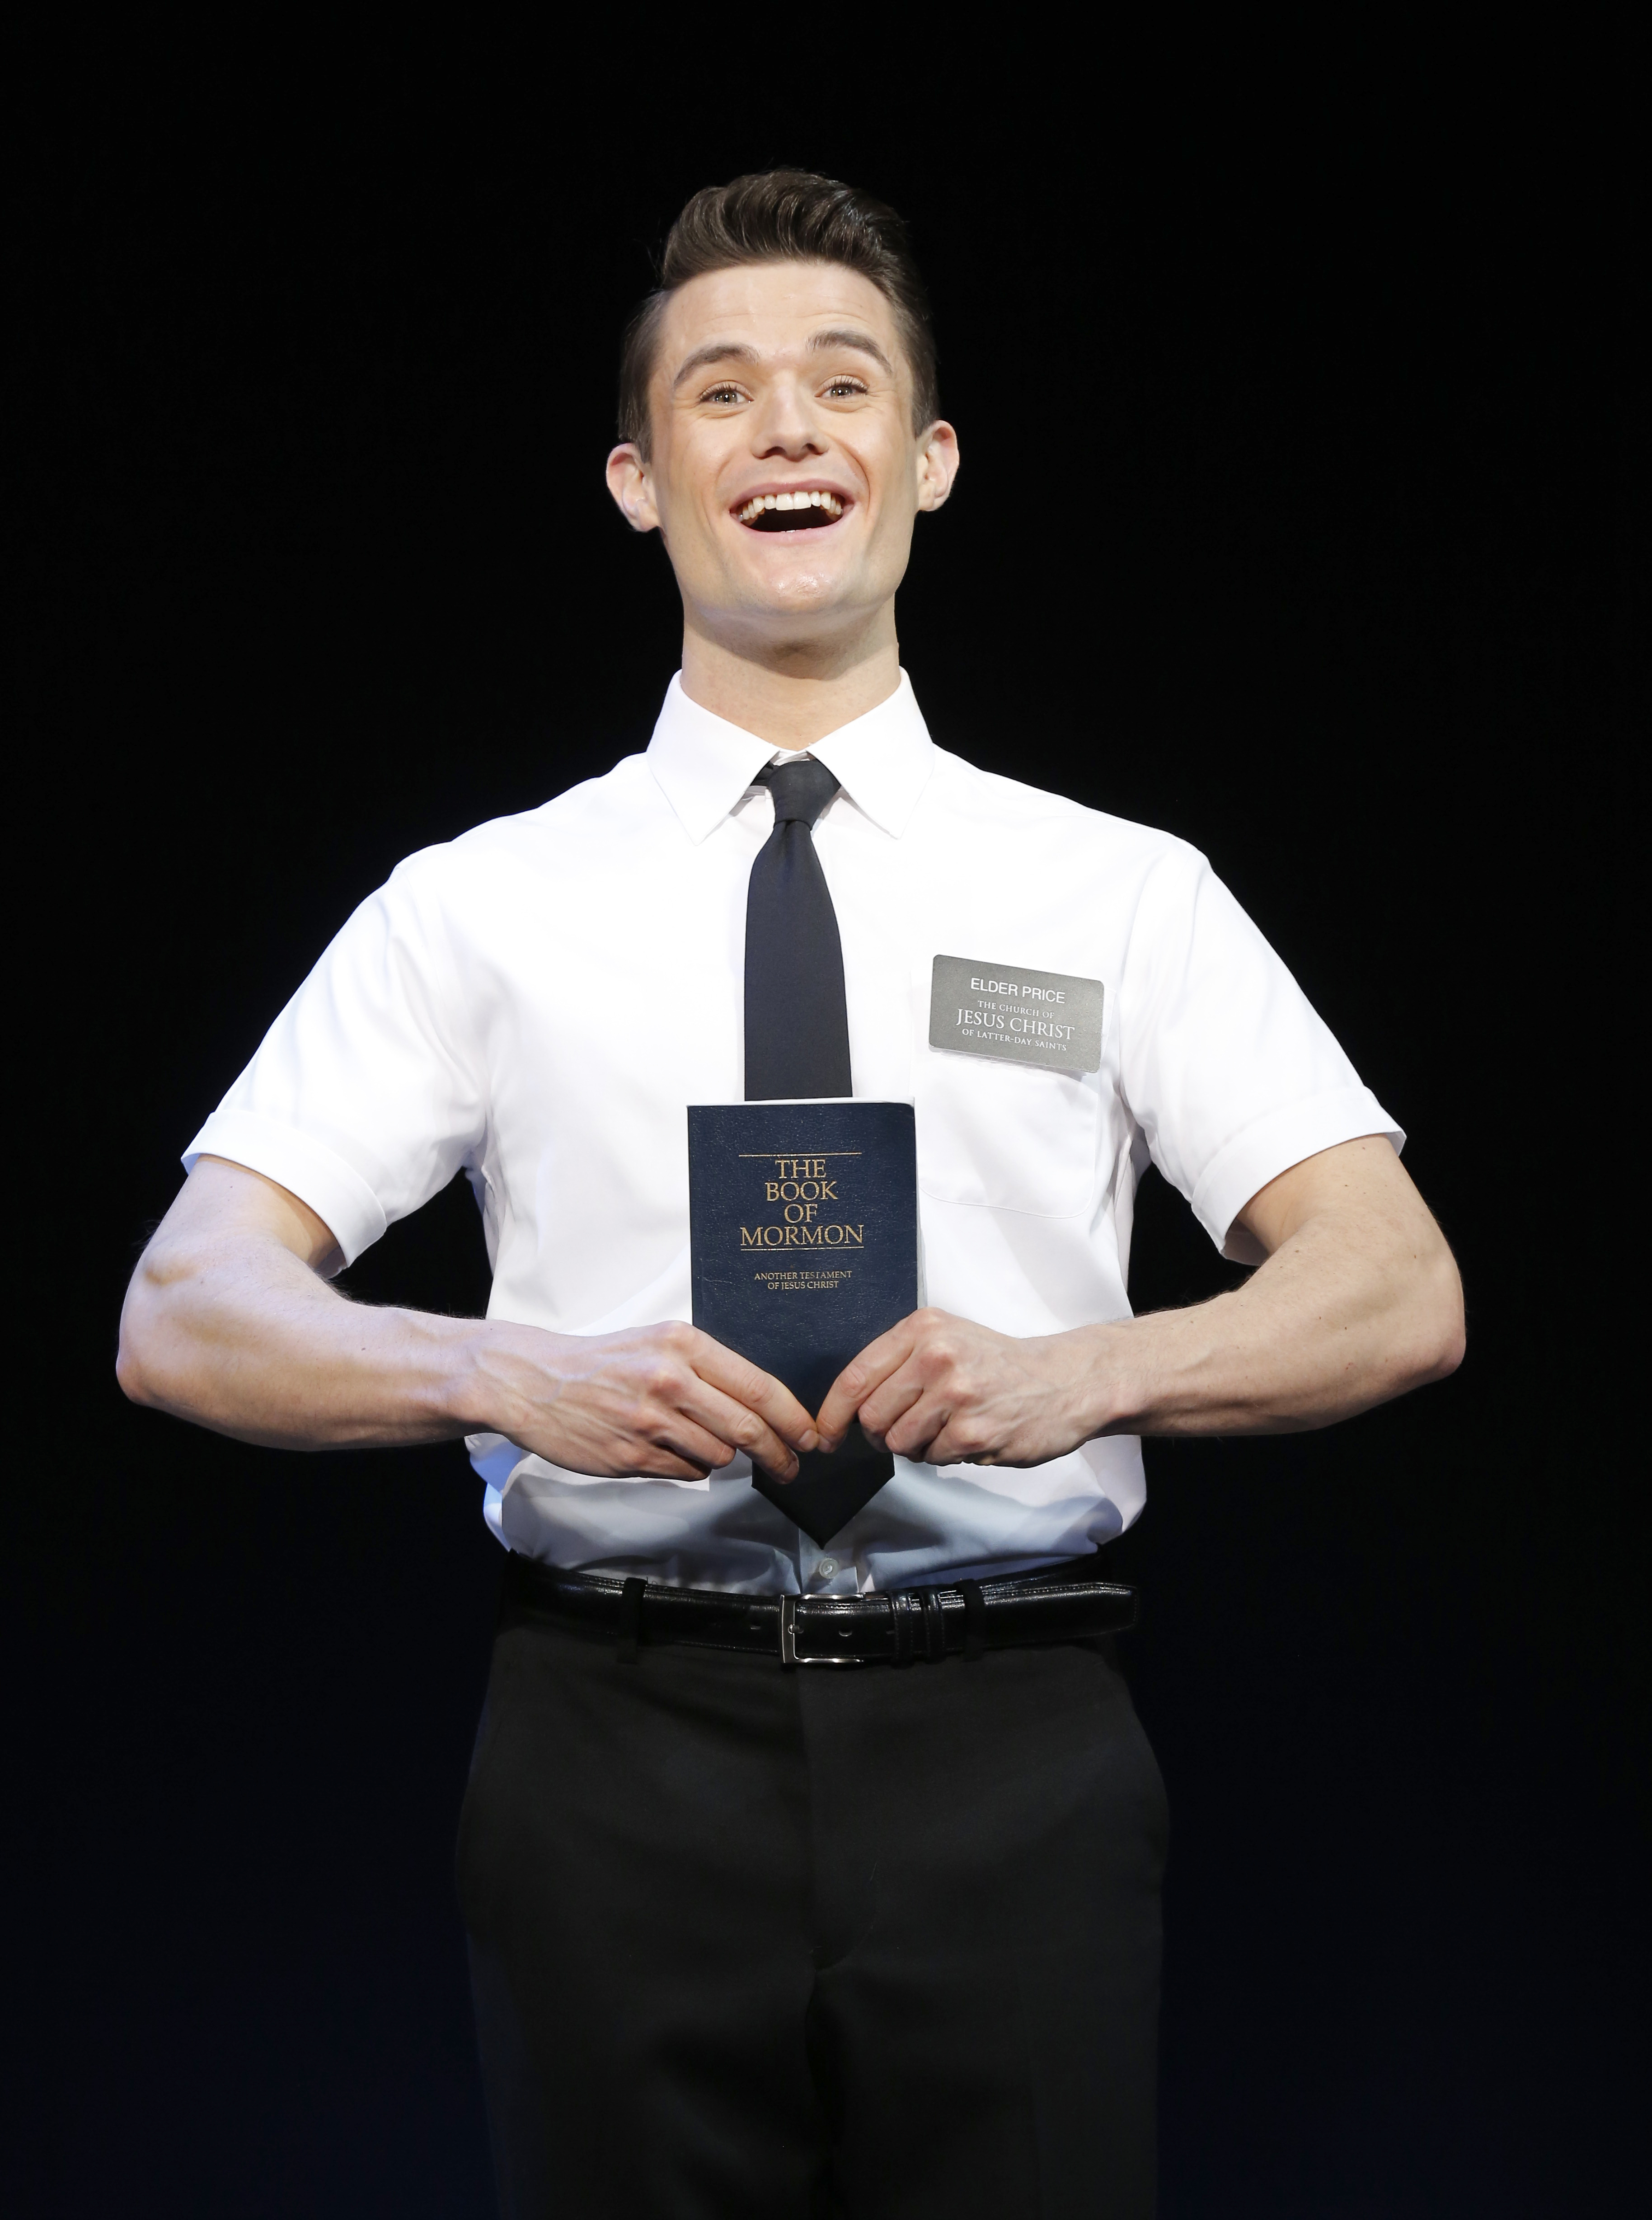 BWW Reviews: THE BOOK OF MORMON is Joyfully Irreverent and Surprisingly Uplifting